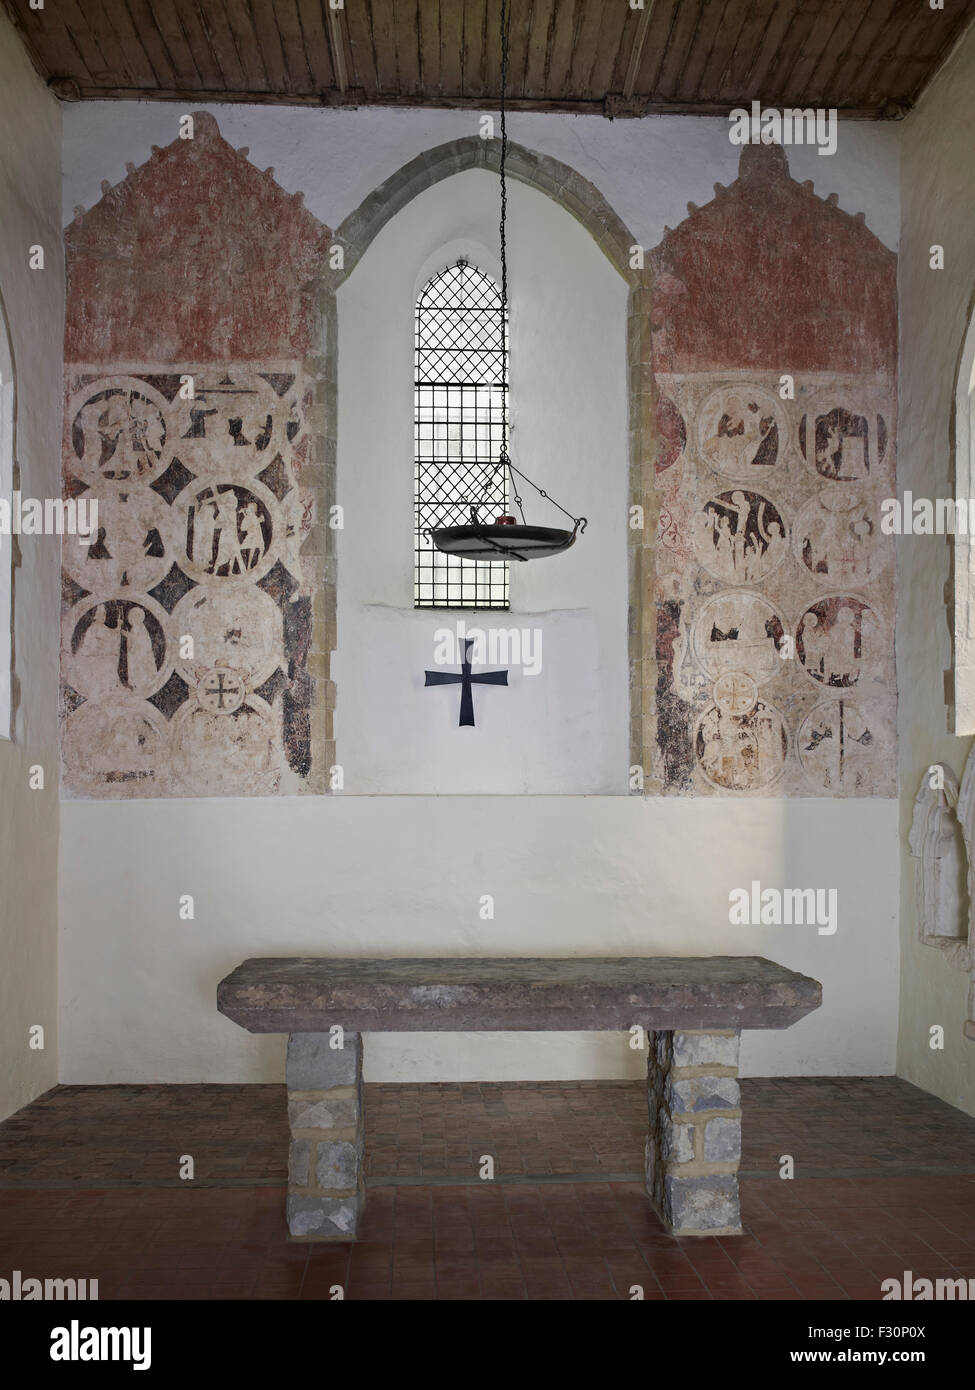 Brook, St Mary, Kent. 13th century wall paintings in the chancel - Stock Image